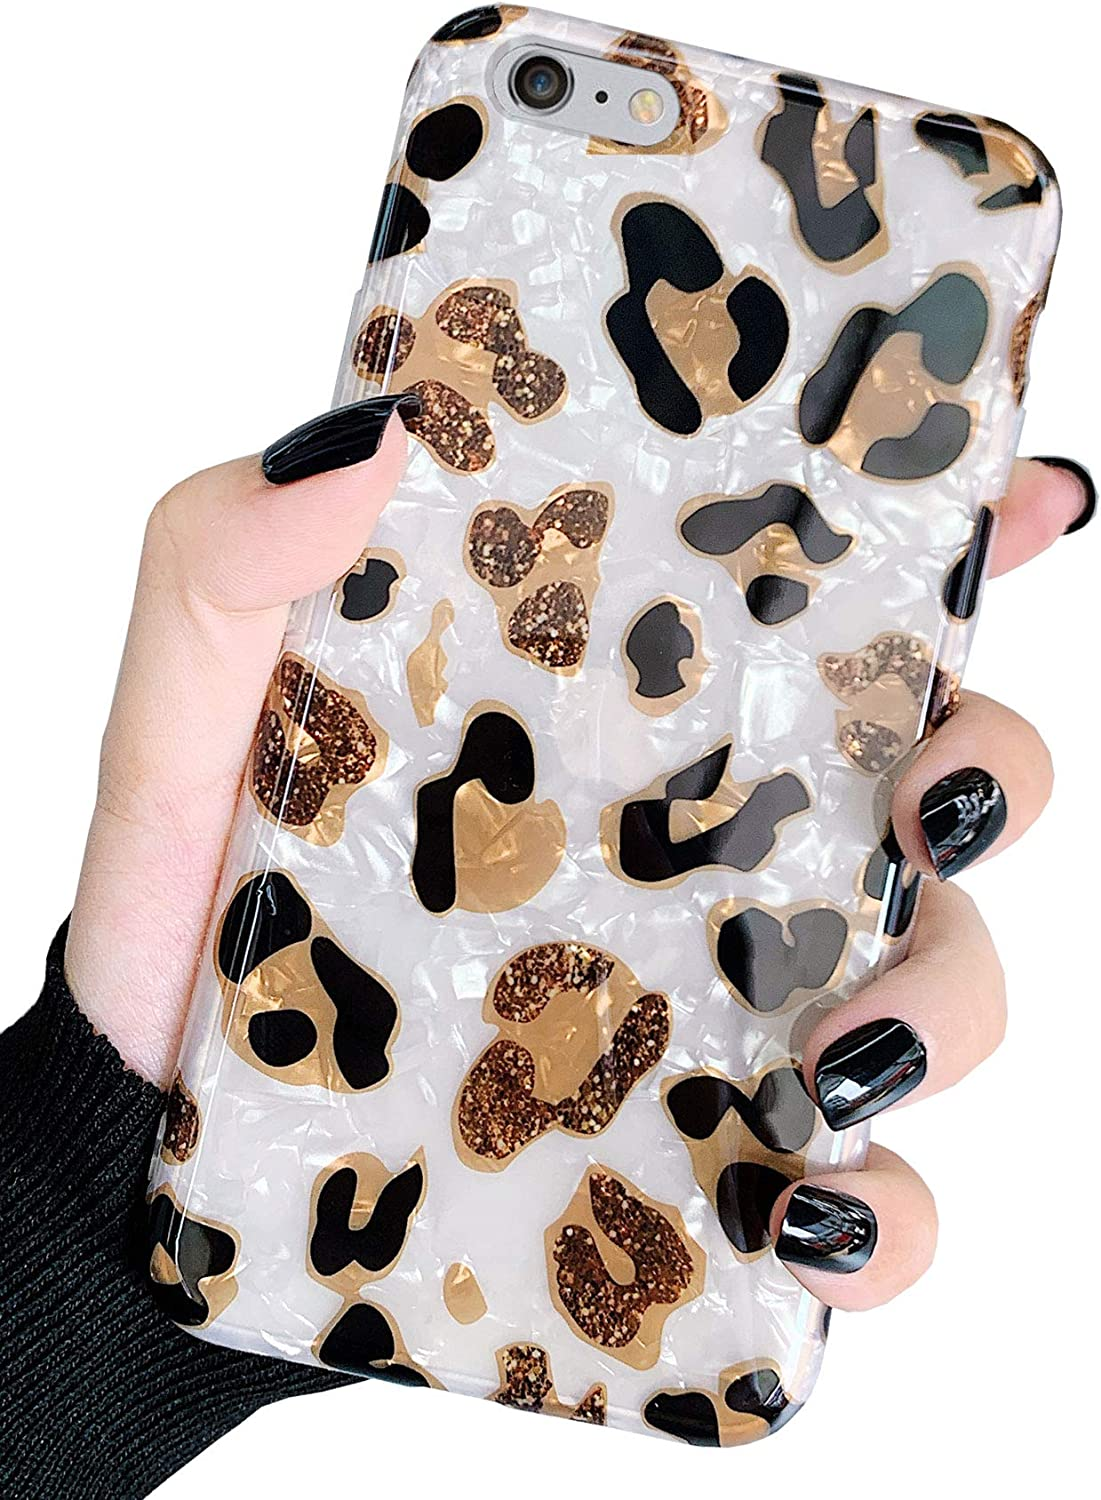 J.west iPhone 6s Plus Case, iPhone 6 Plus Case, Bling Glitter Translucent White Leopard Cheetah Print Pearly-Lustre Design Soft Silicone Protective Phone Case Cover for Women Girls (Sparkly)